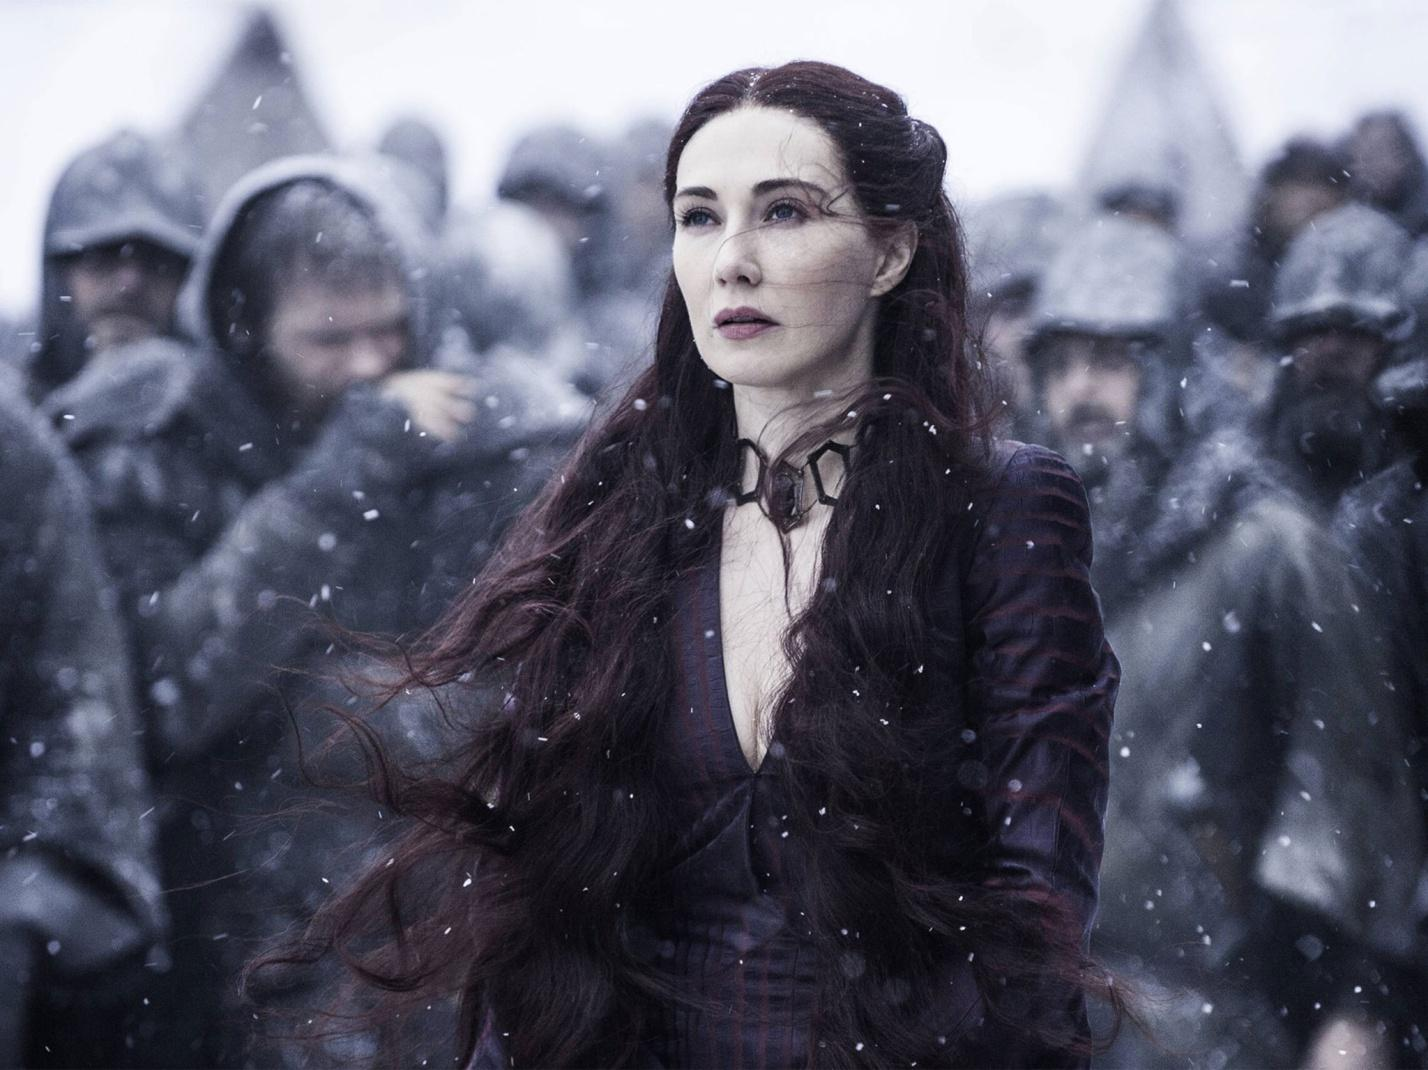 C:\Users\user\Desktop\Reacho\pics\web-melisandre-thrones-hbo.jpg